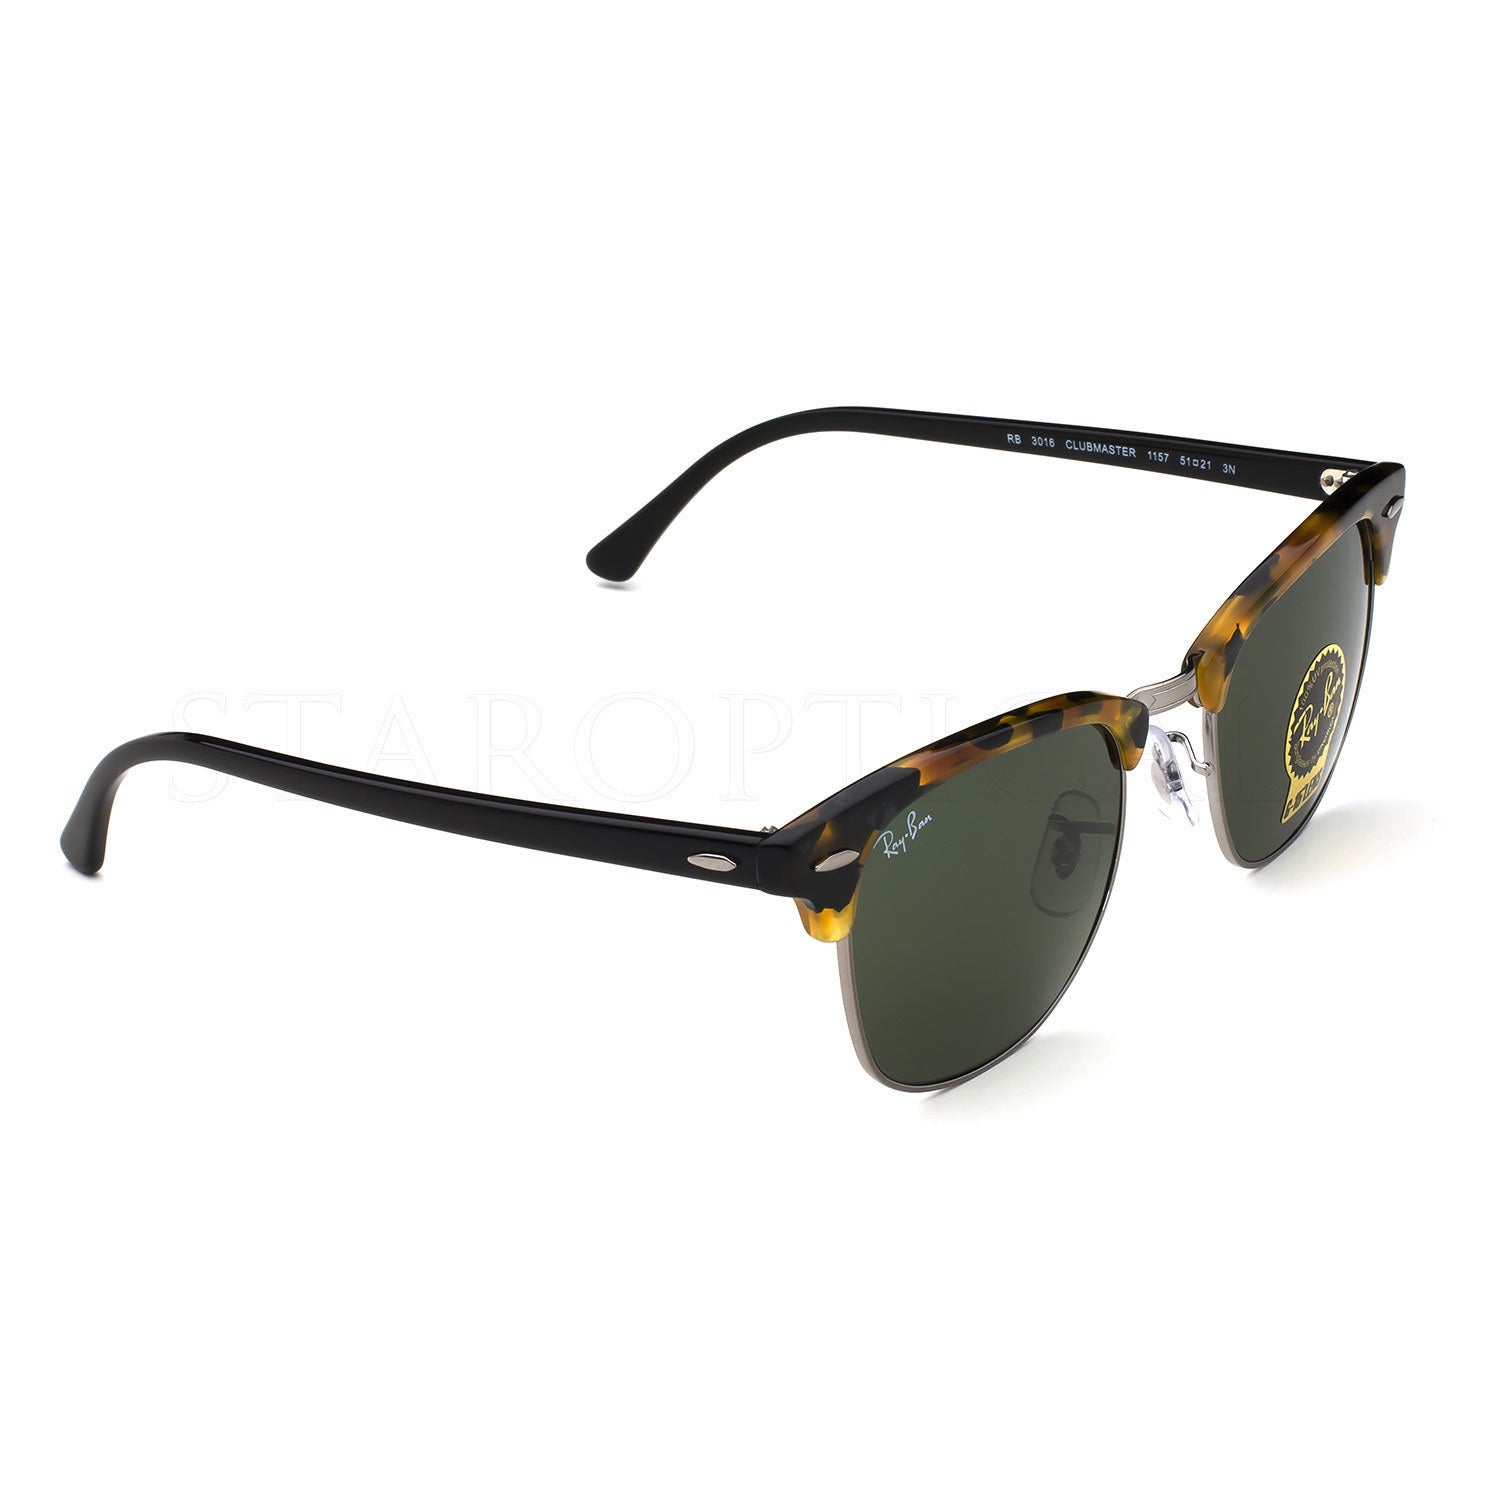 bedd312a01 Shop Ray-Ban RB3016 1157 Unisex Tortoise Black Frame Green Classic 49mm  Lens Sunglasses - Free Shipping Today - Overstock - 11118537